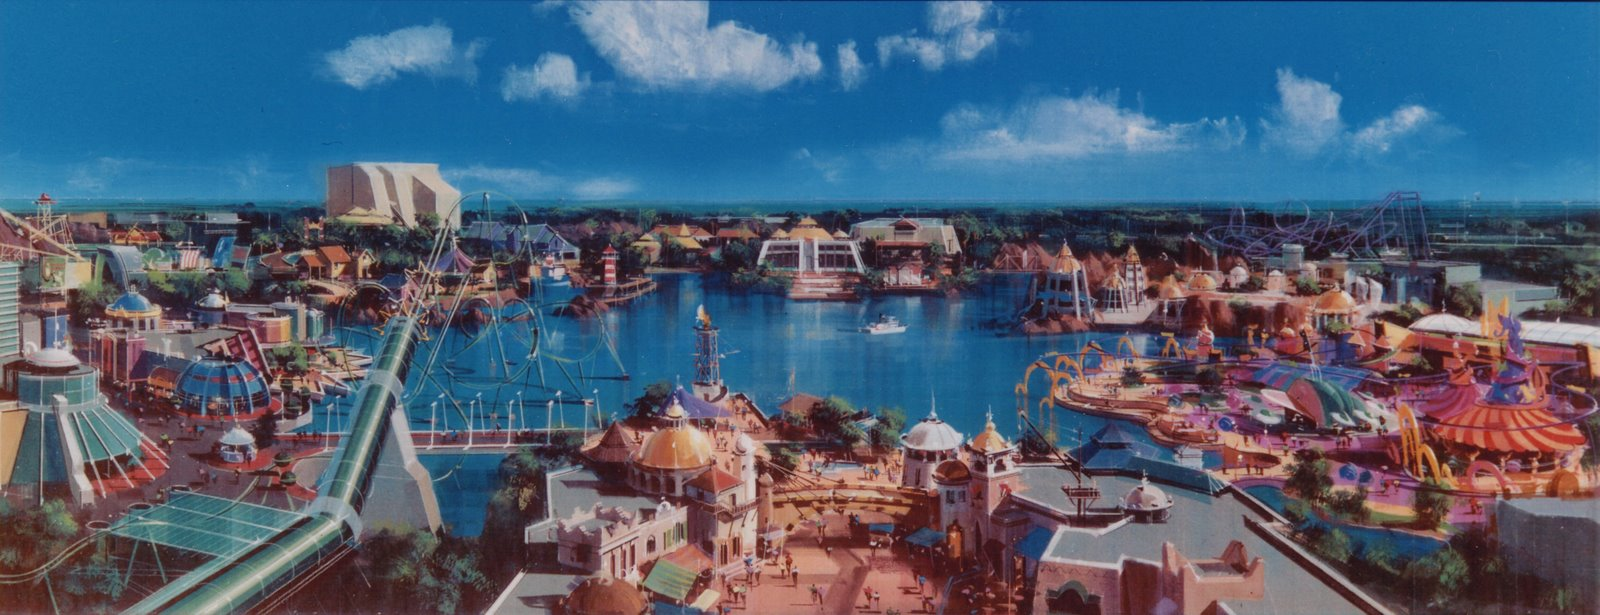 Islands of Adventure panoramic painting